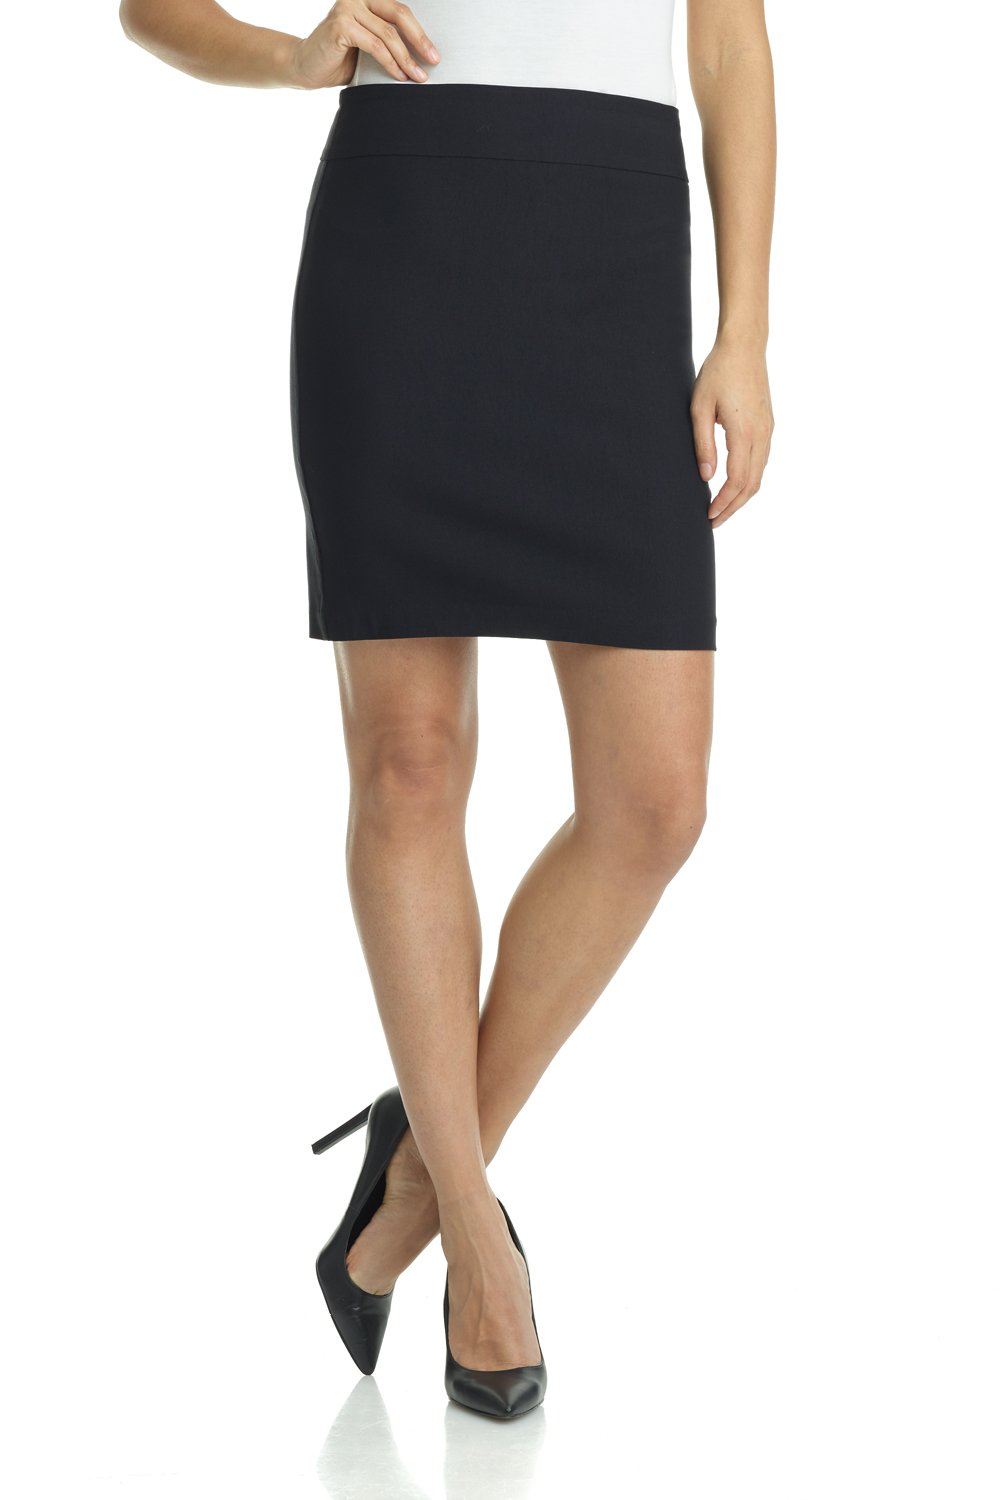 Rekucci Women's Ease In To Comfort Stretchable Above The Knee Pencil Skirt 19'' (Small,Black)